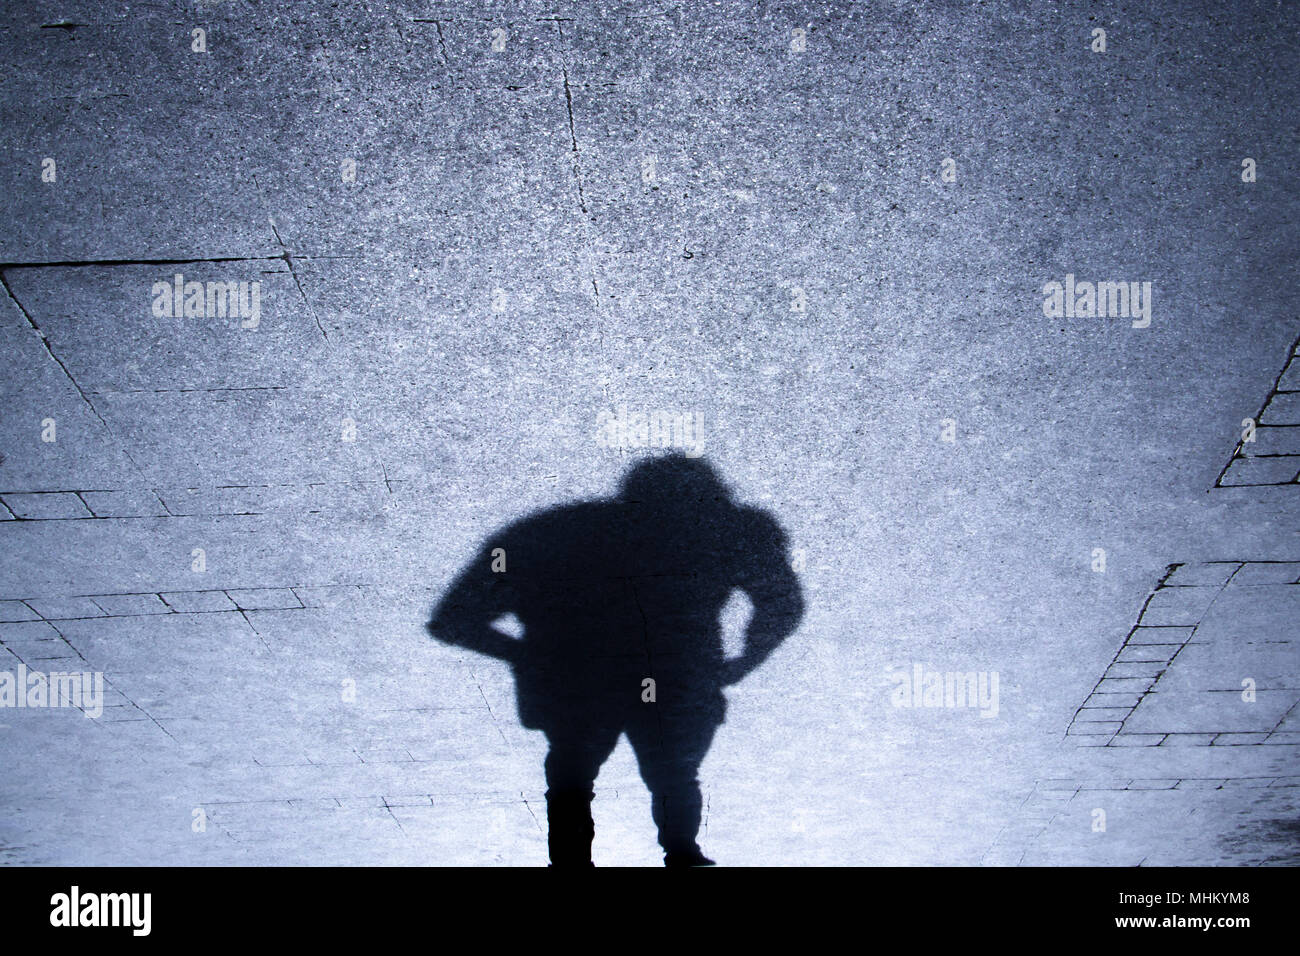 Upside down silhouette shadow of a man sending on patterened sidewalk from behind, in the night - Stock Image